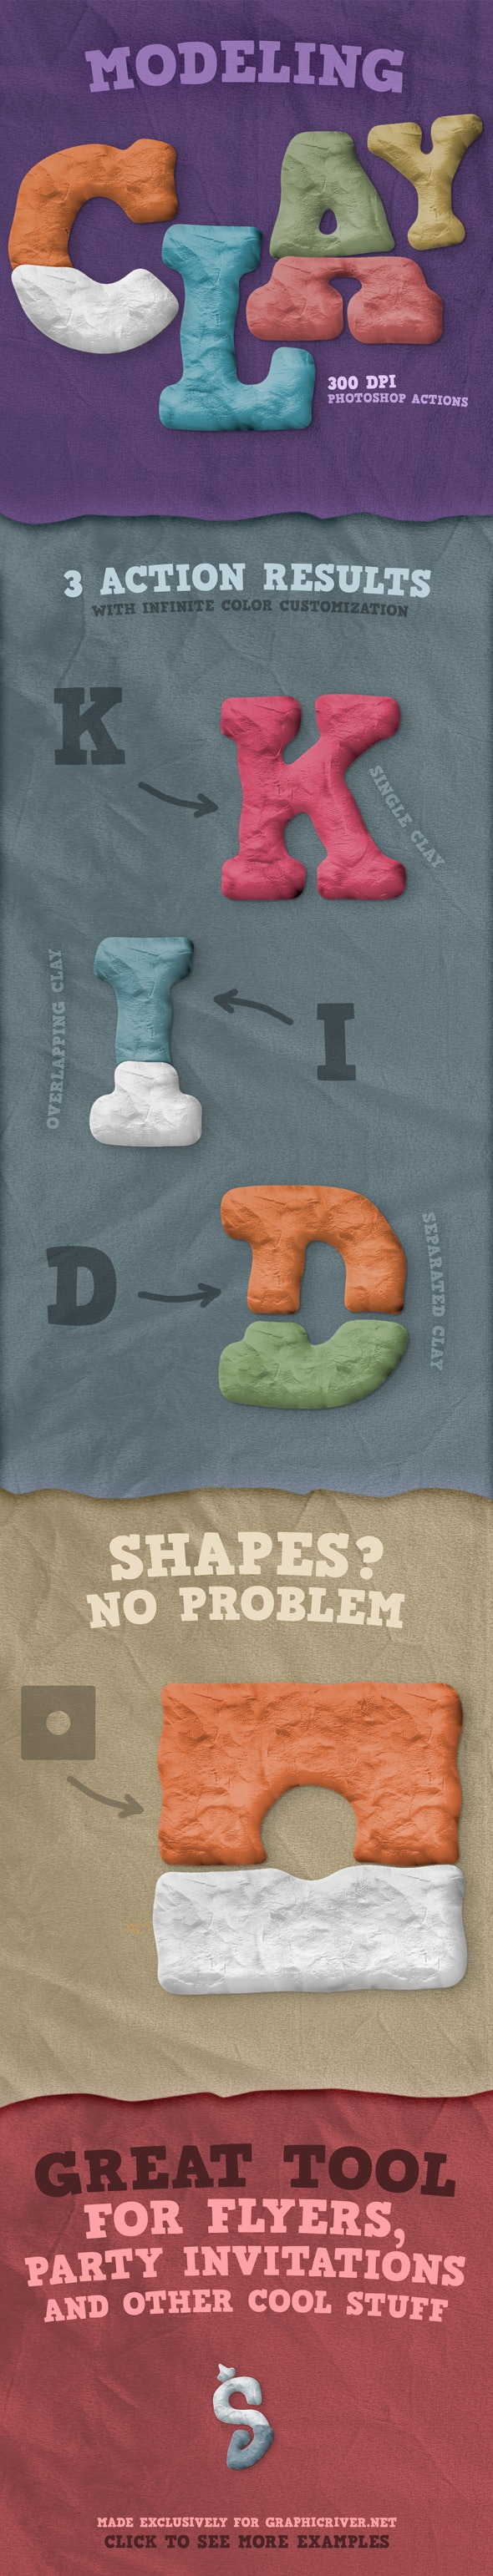 Modeling Clay - Photoshop Actions - Text Effects Actions